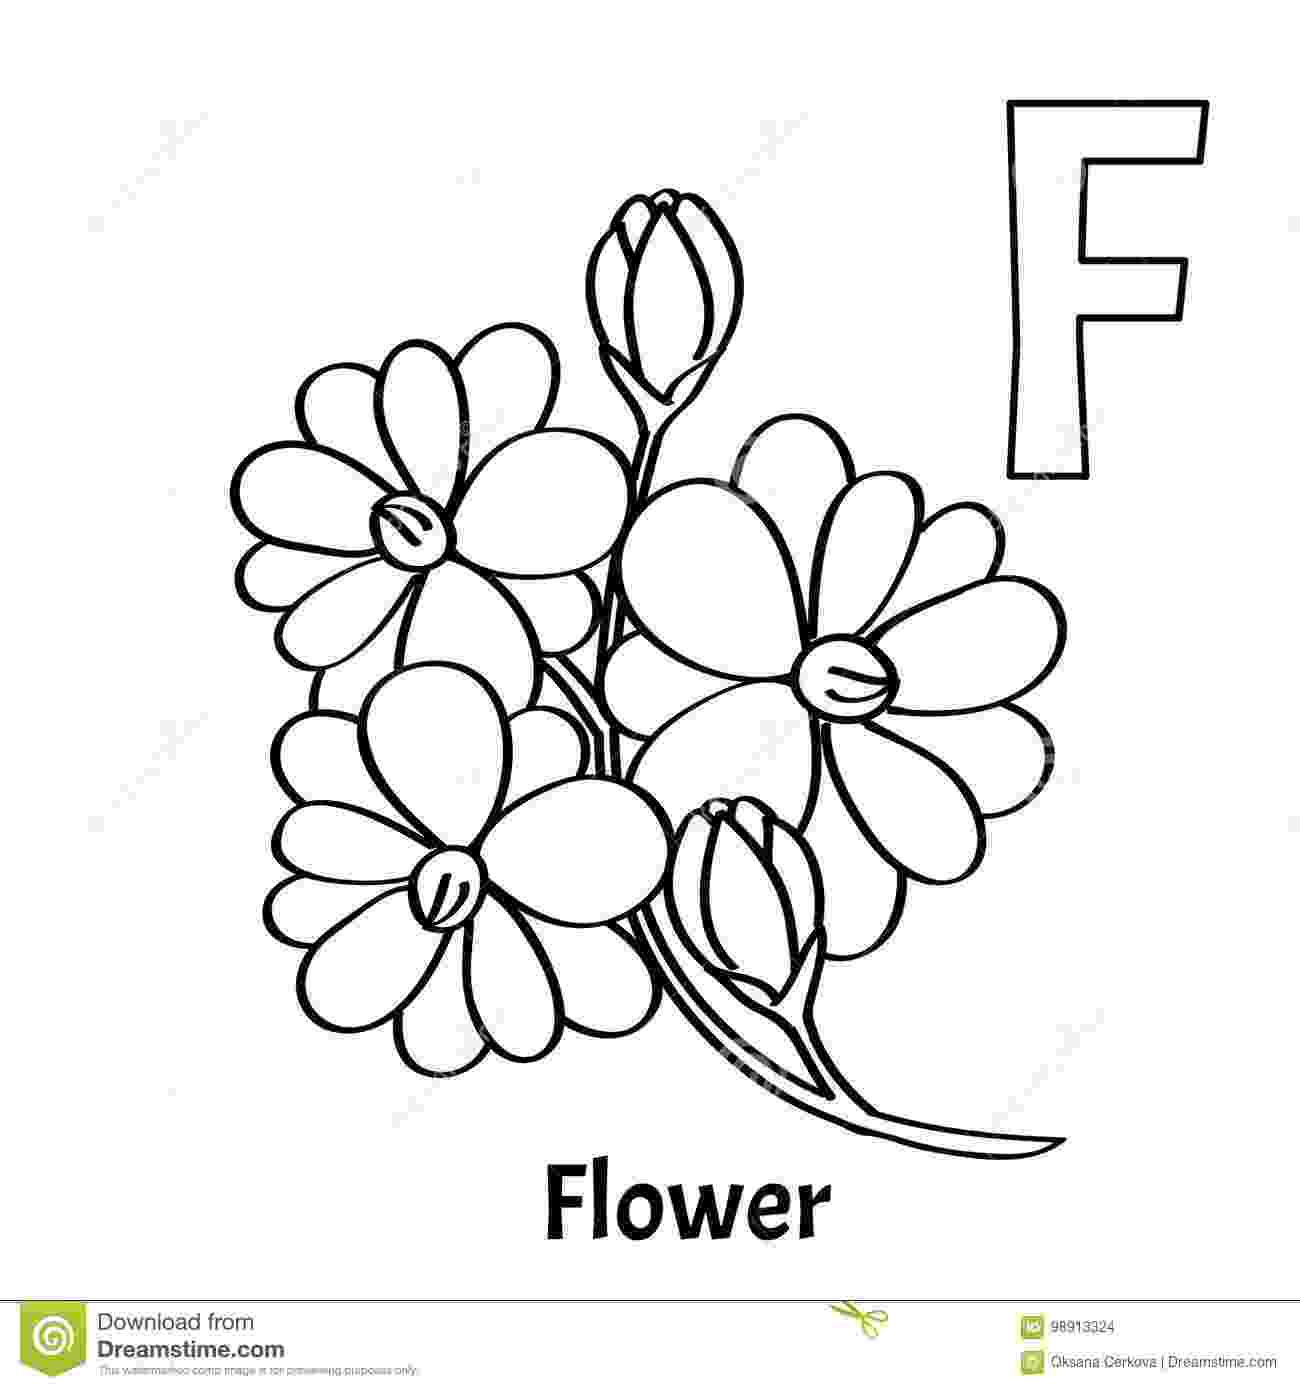 f is for flower vector alphabet letter f coloring page flower stock f for is flower